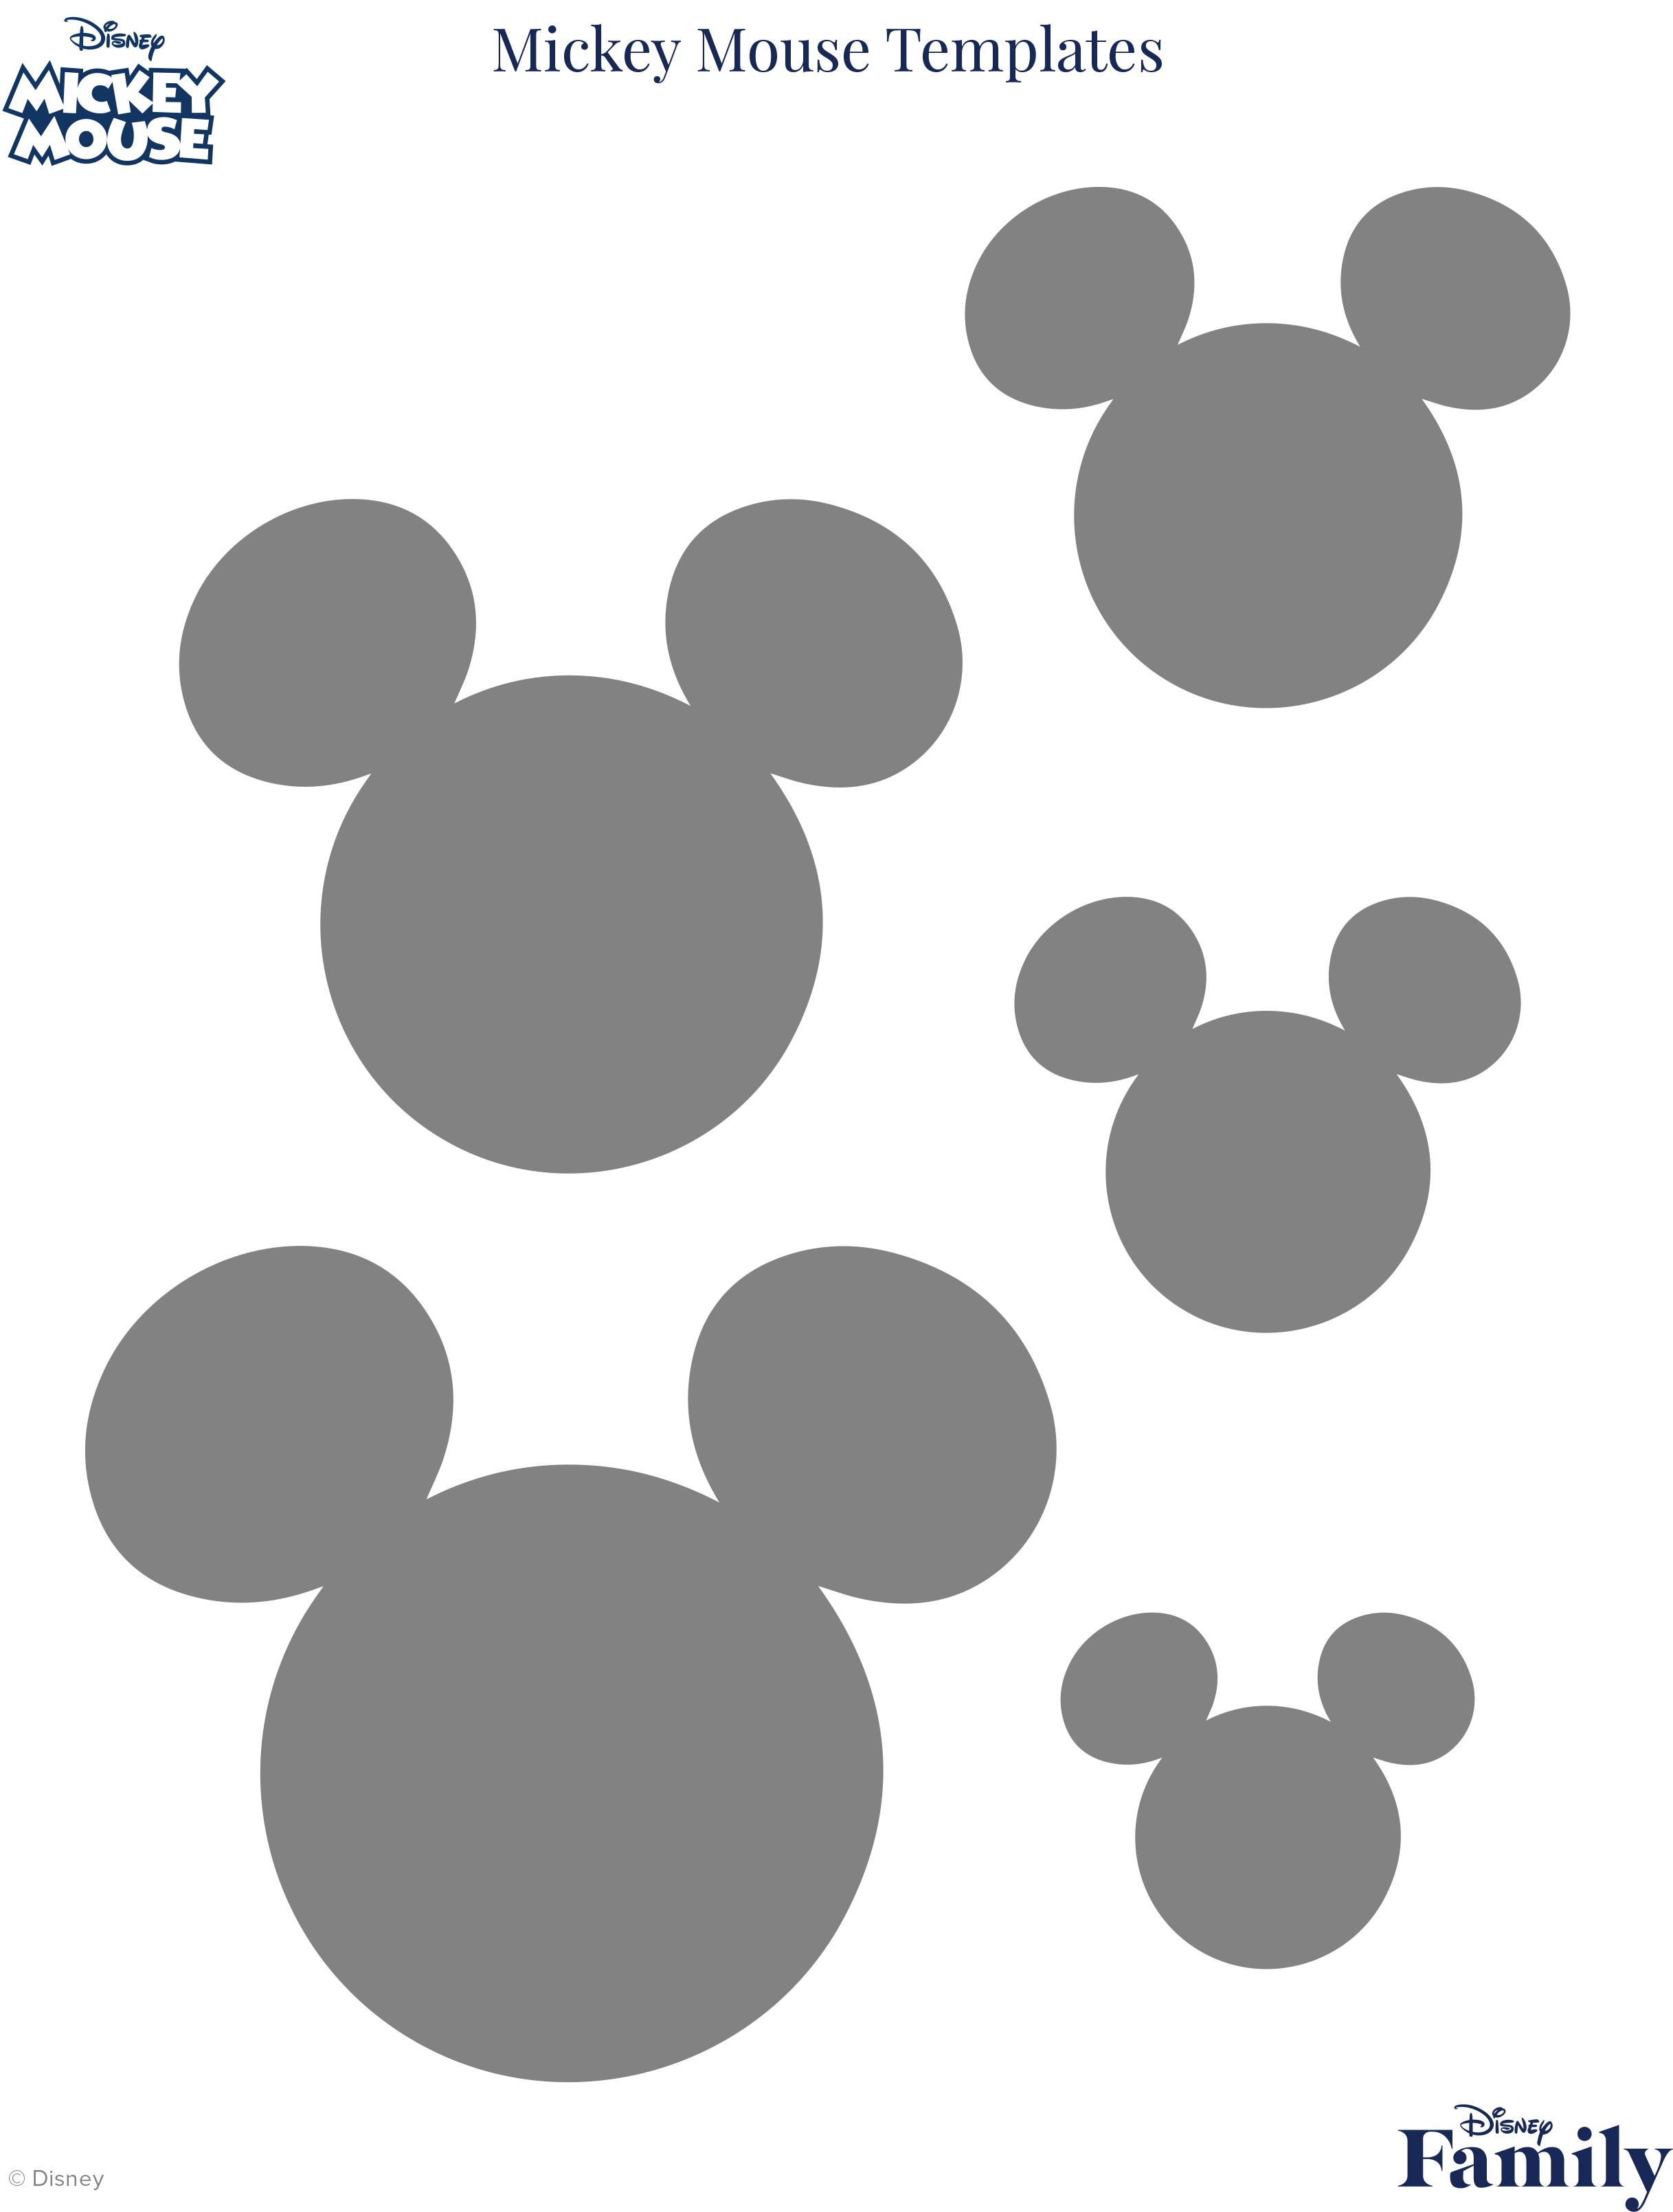 Mickey Mouse Template | Disney Family - Free Printable Mickey Mouse Head